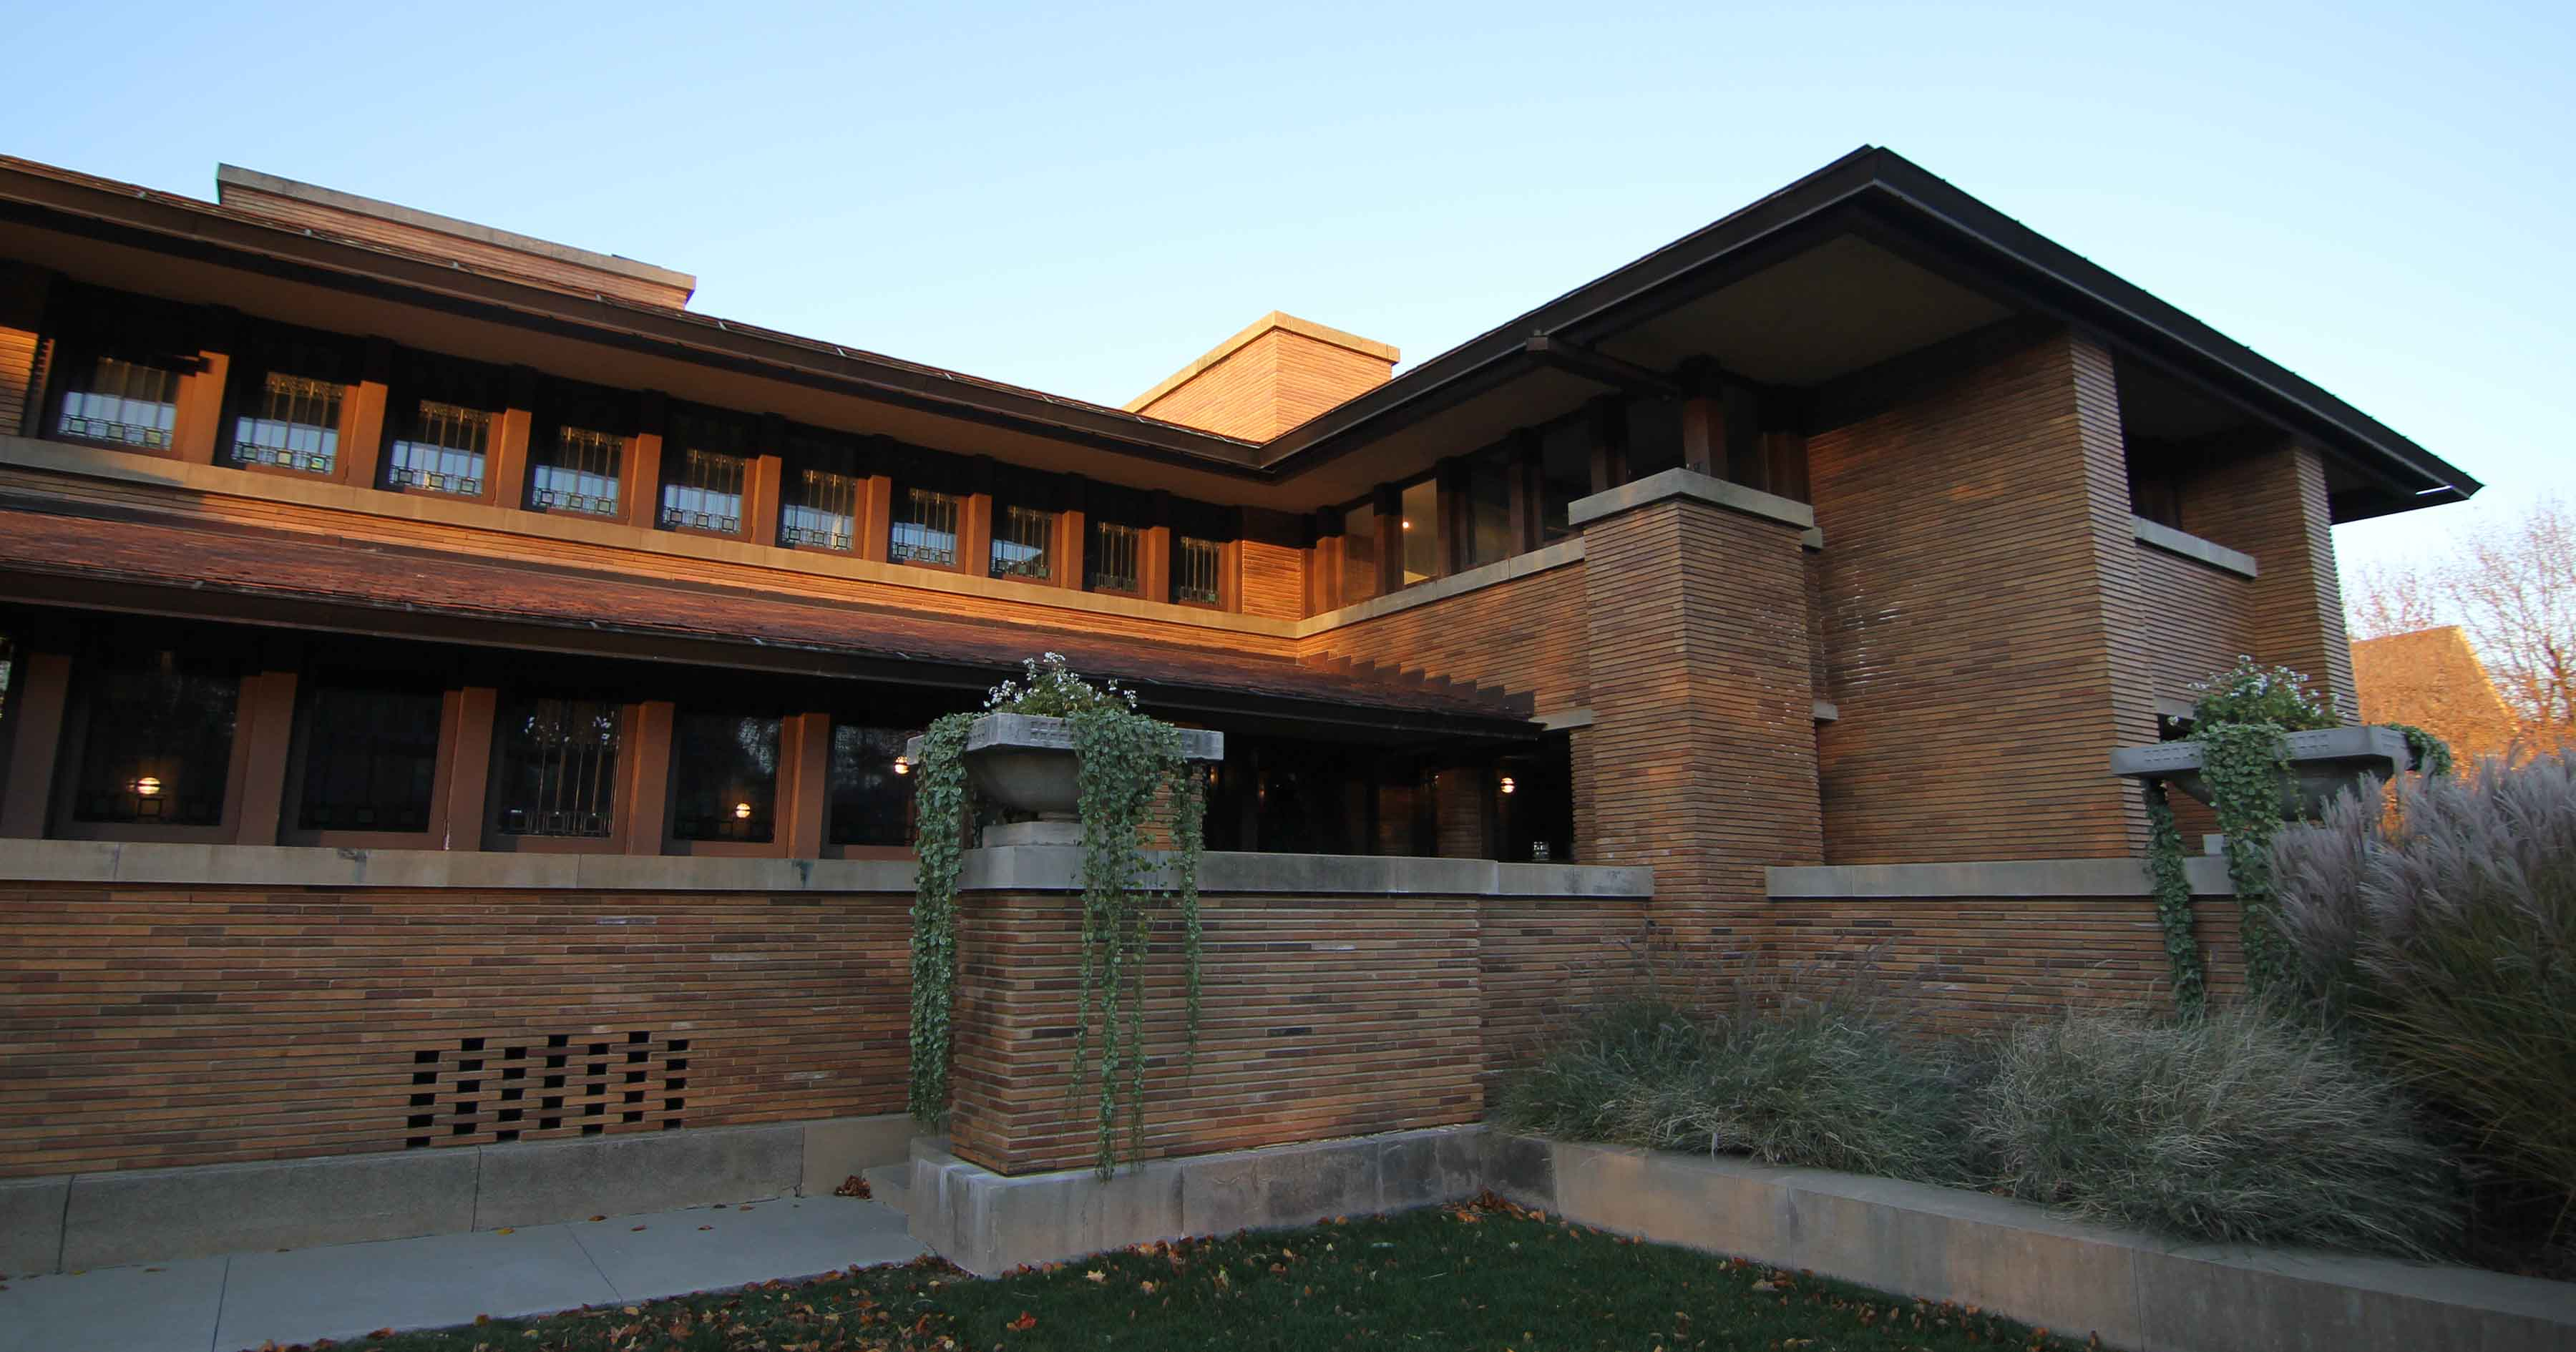 How to see the darwin martin house at twilight visit for Martins fish house